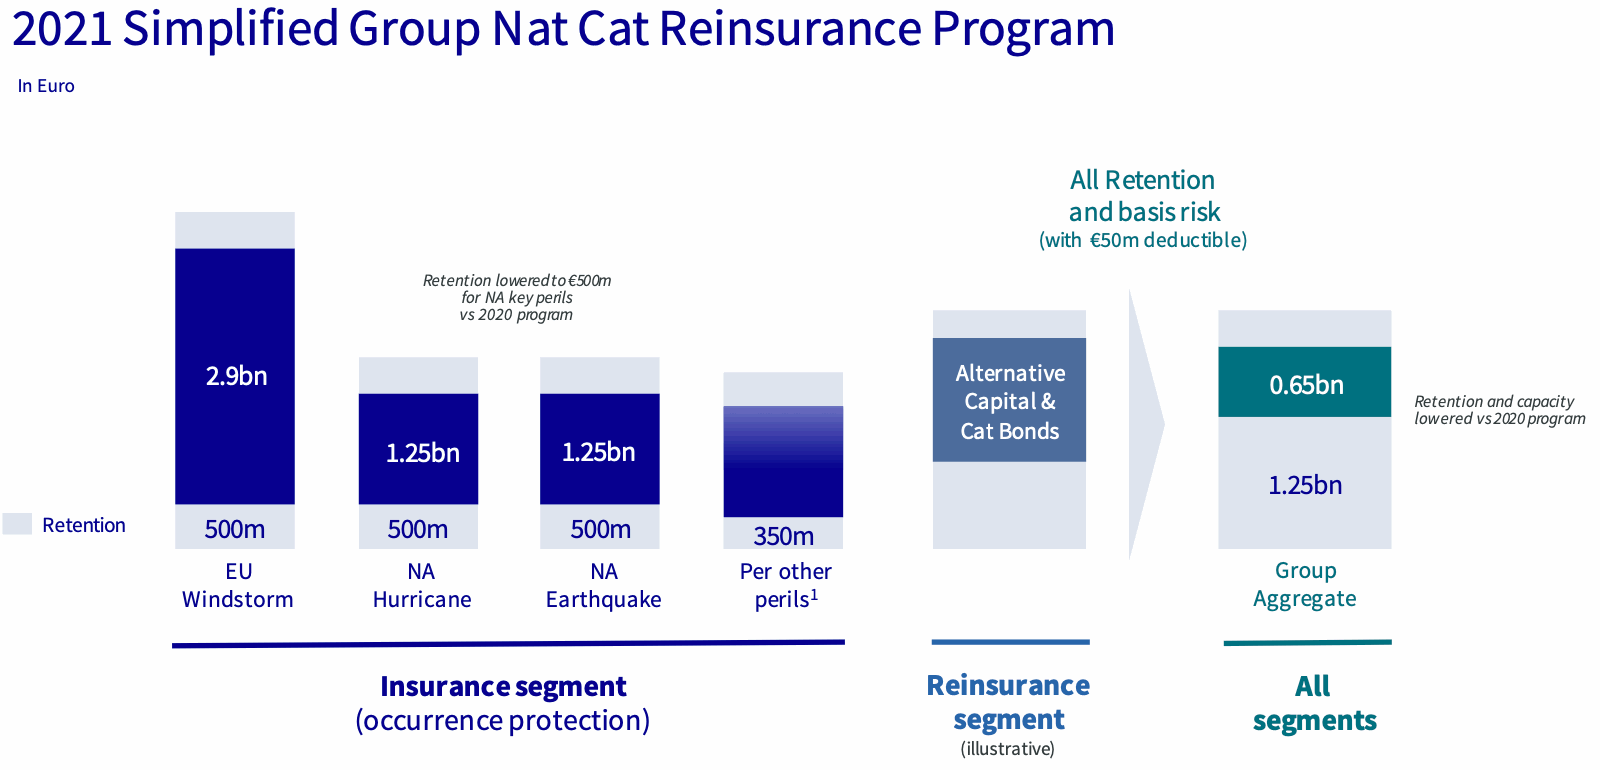 axa-reinsurance-program-2021